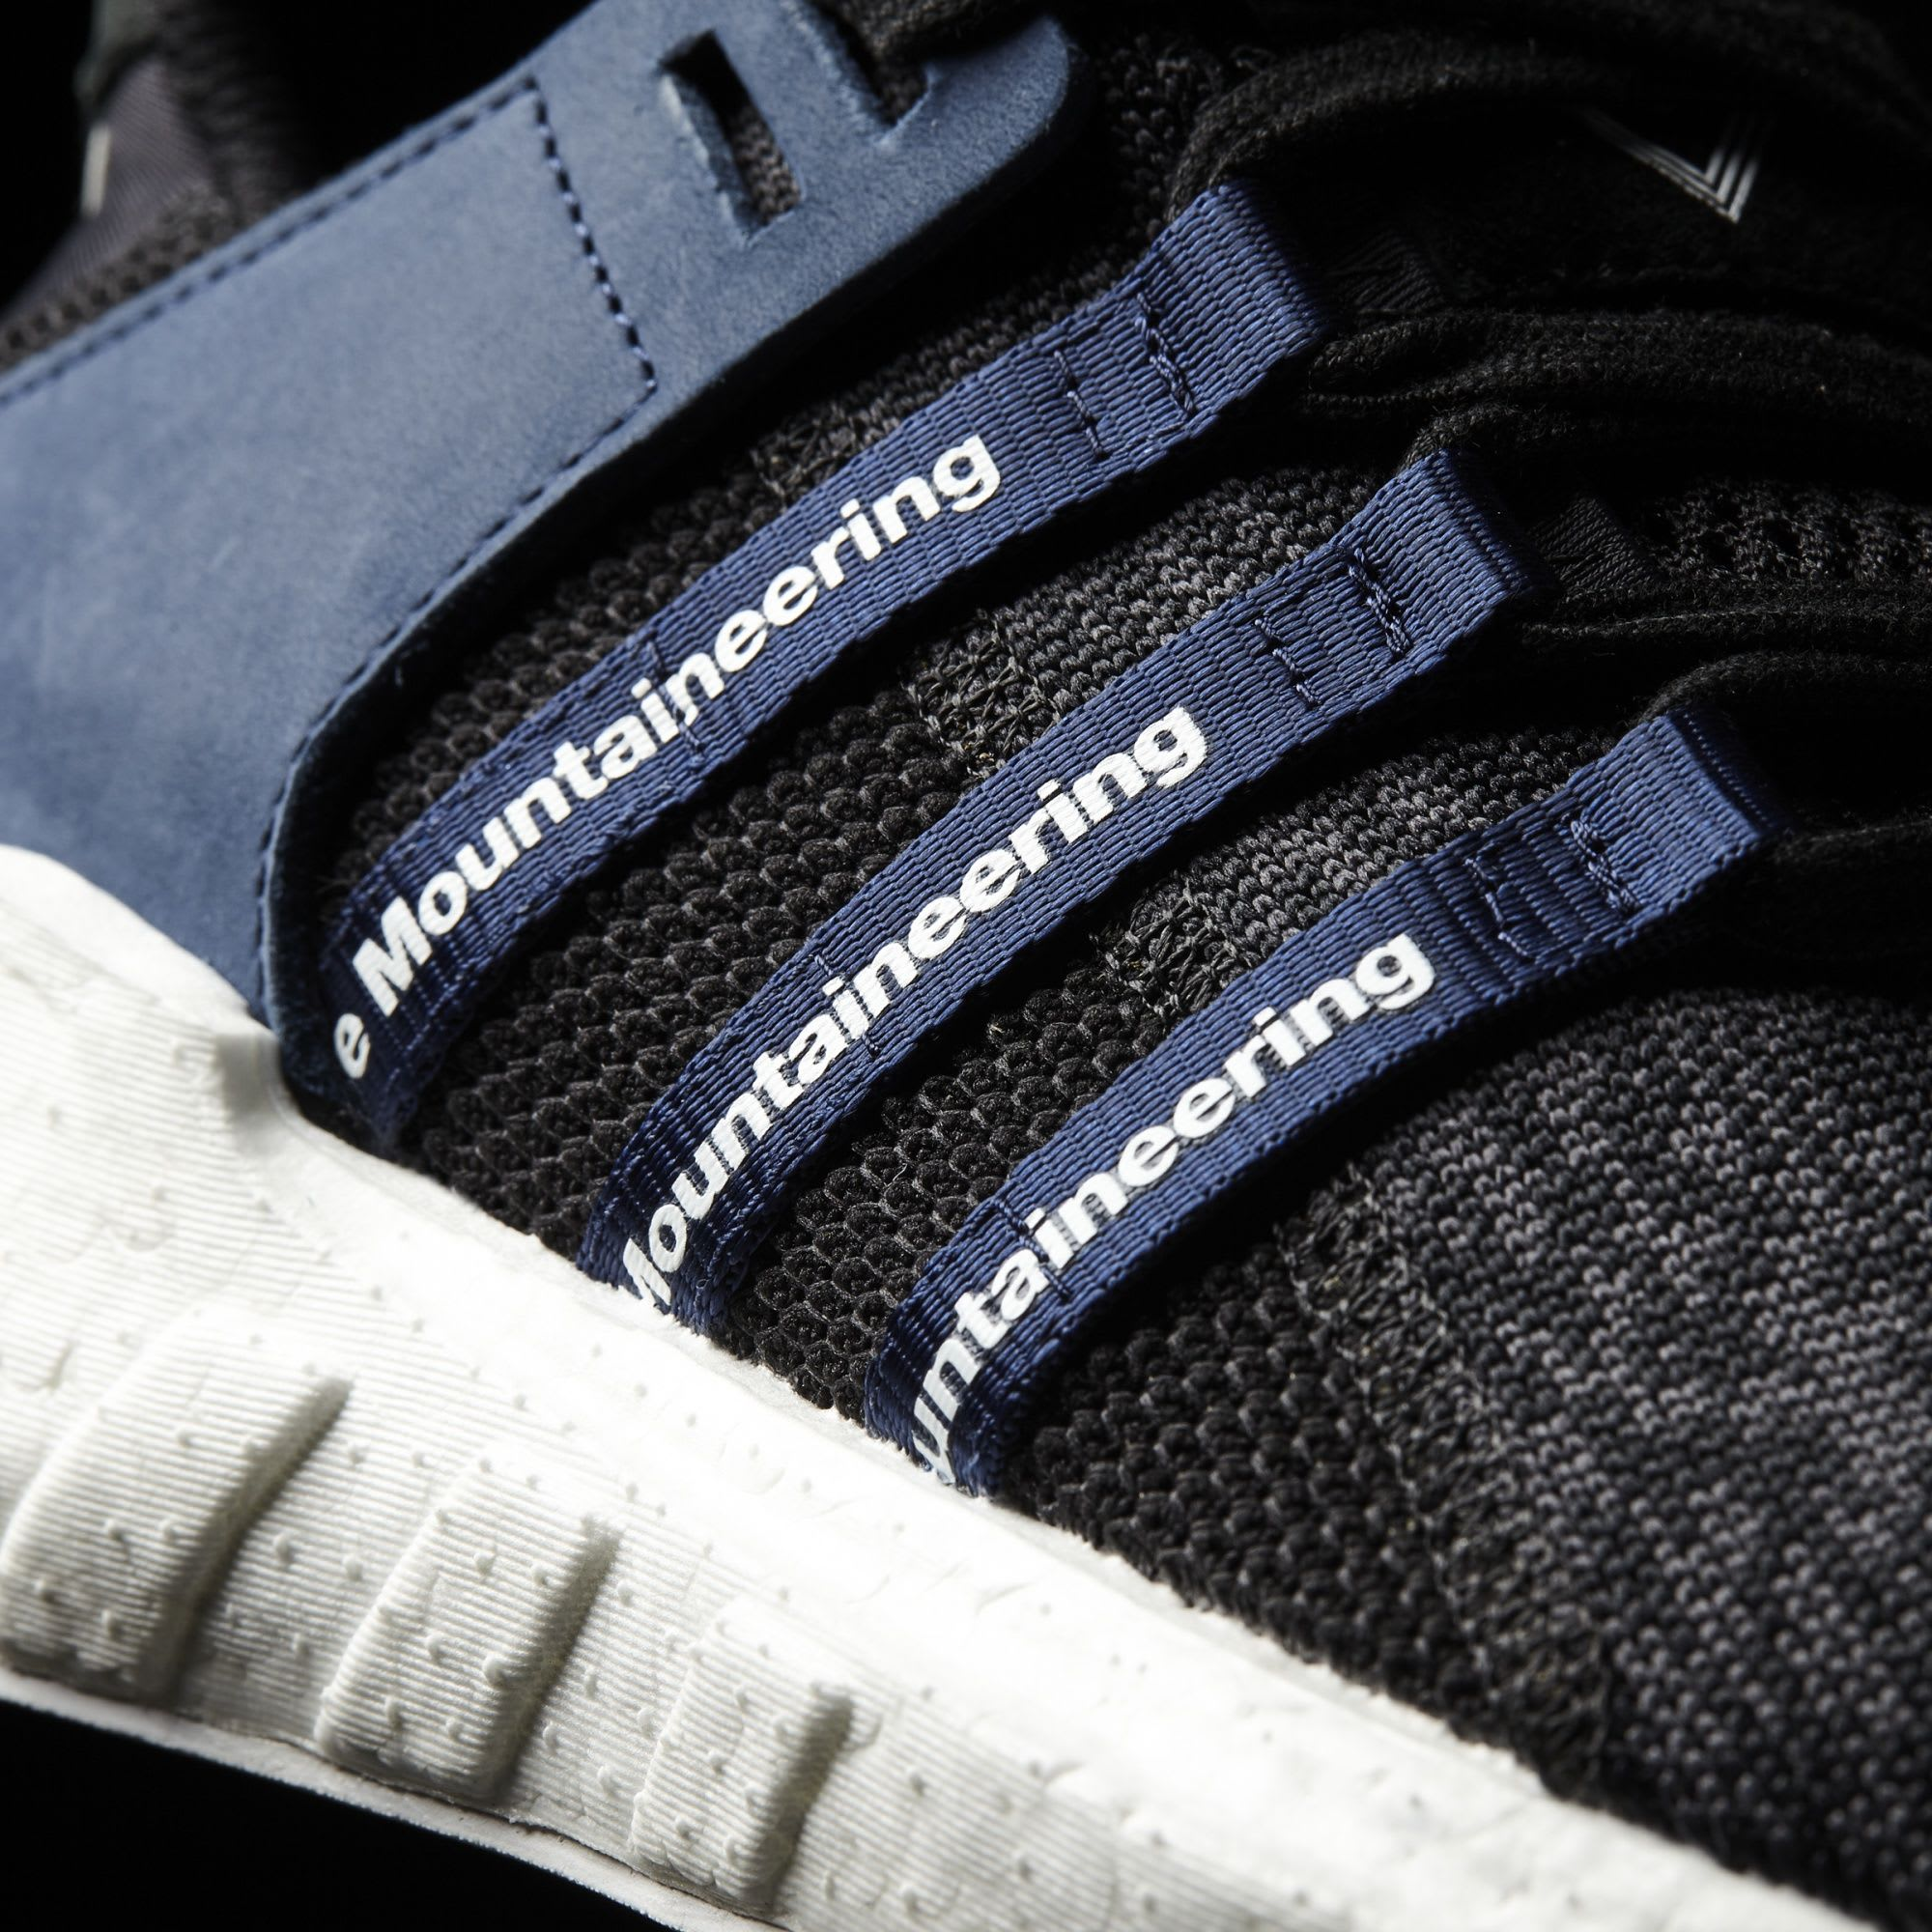 the best attitude af000 54813 Image via Adidas White Mountaineering x Adidas EQT Support 93-17 detail